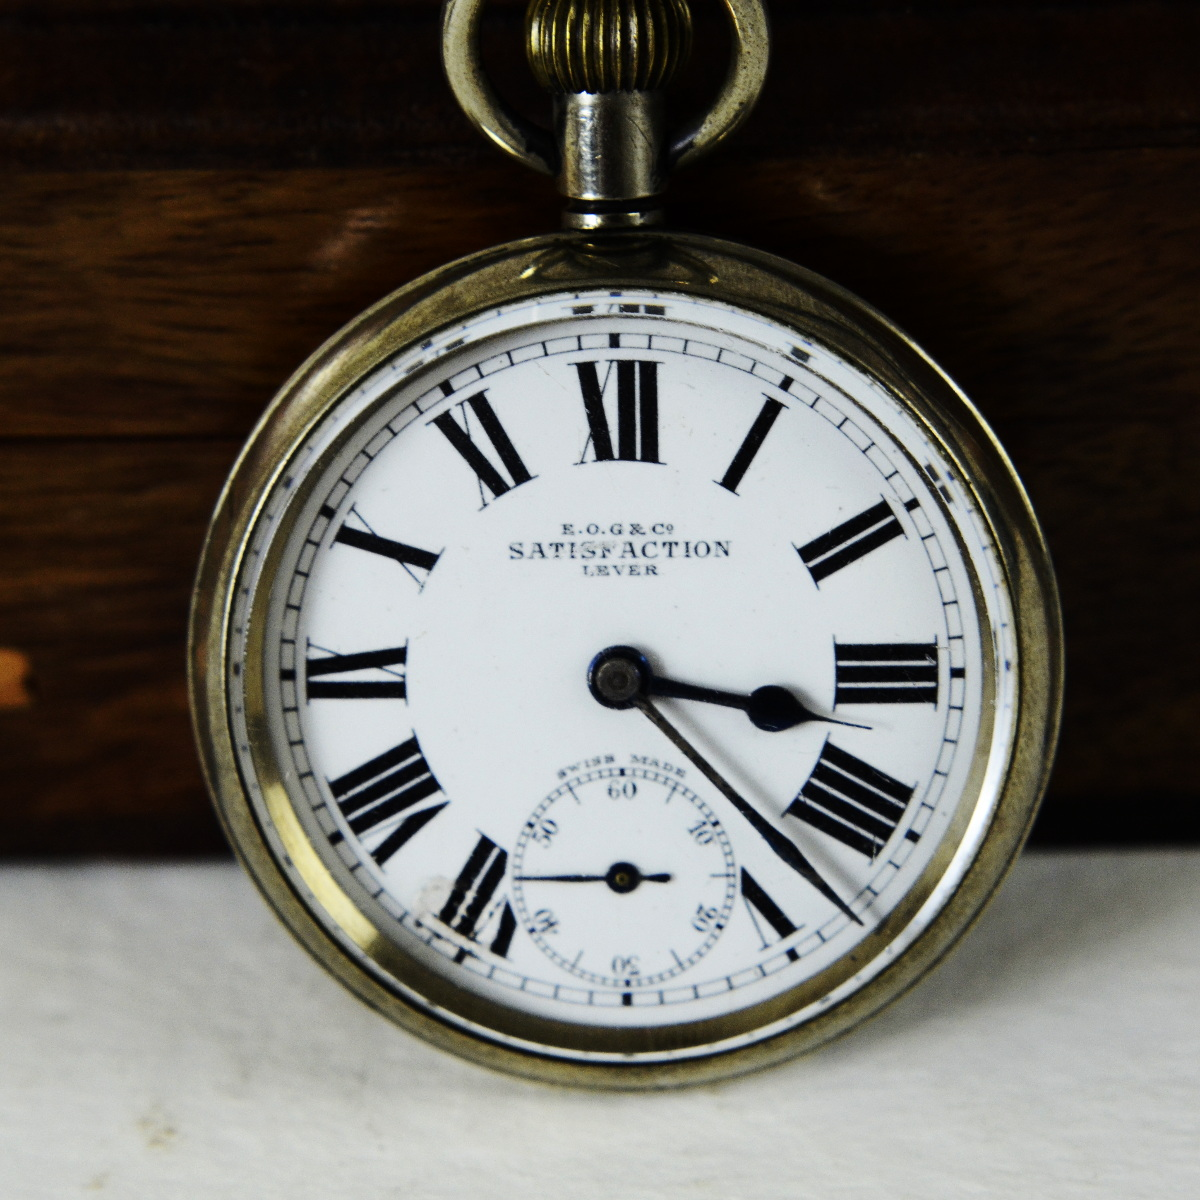 antique swiss made satisfaction pocket watch